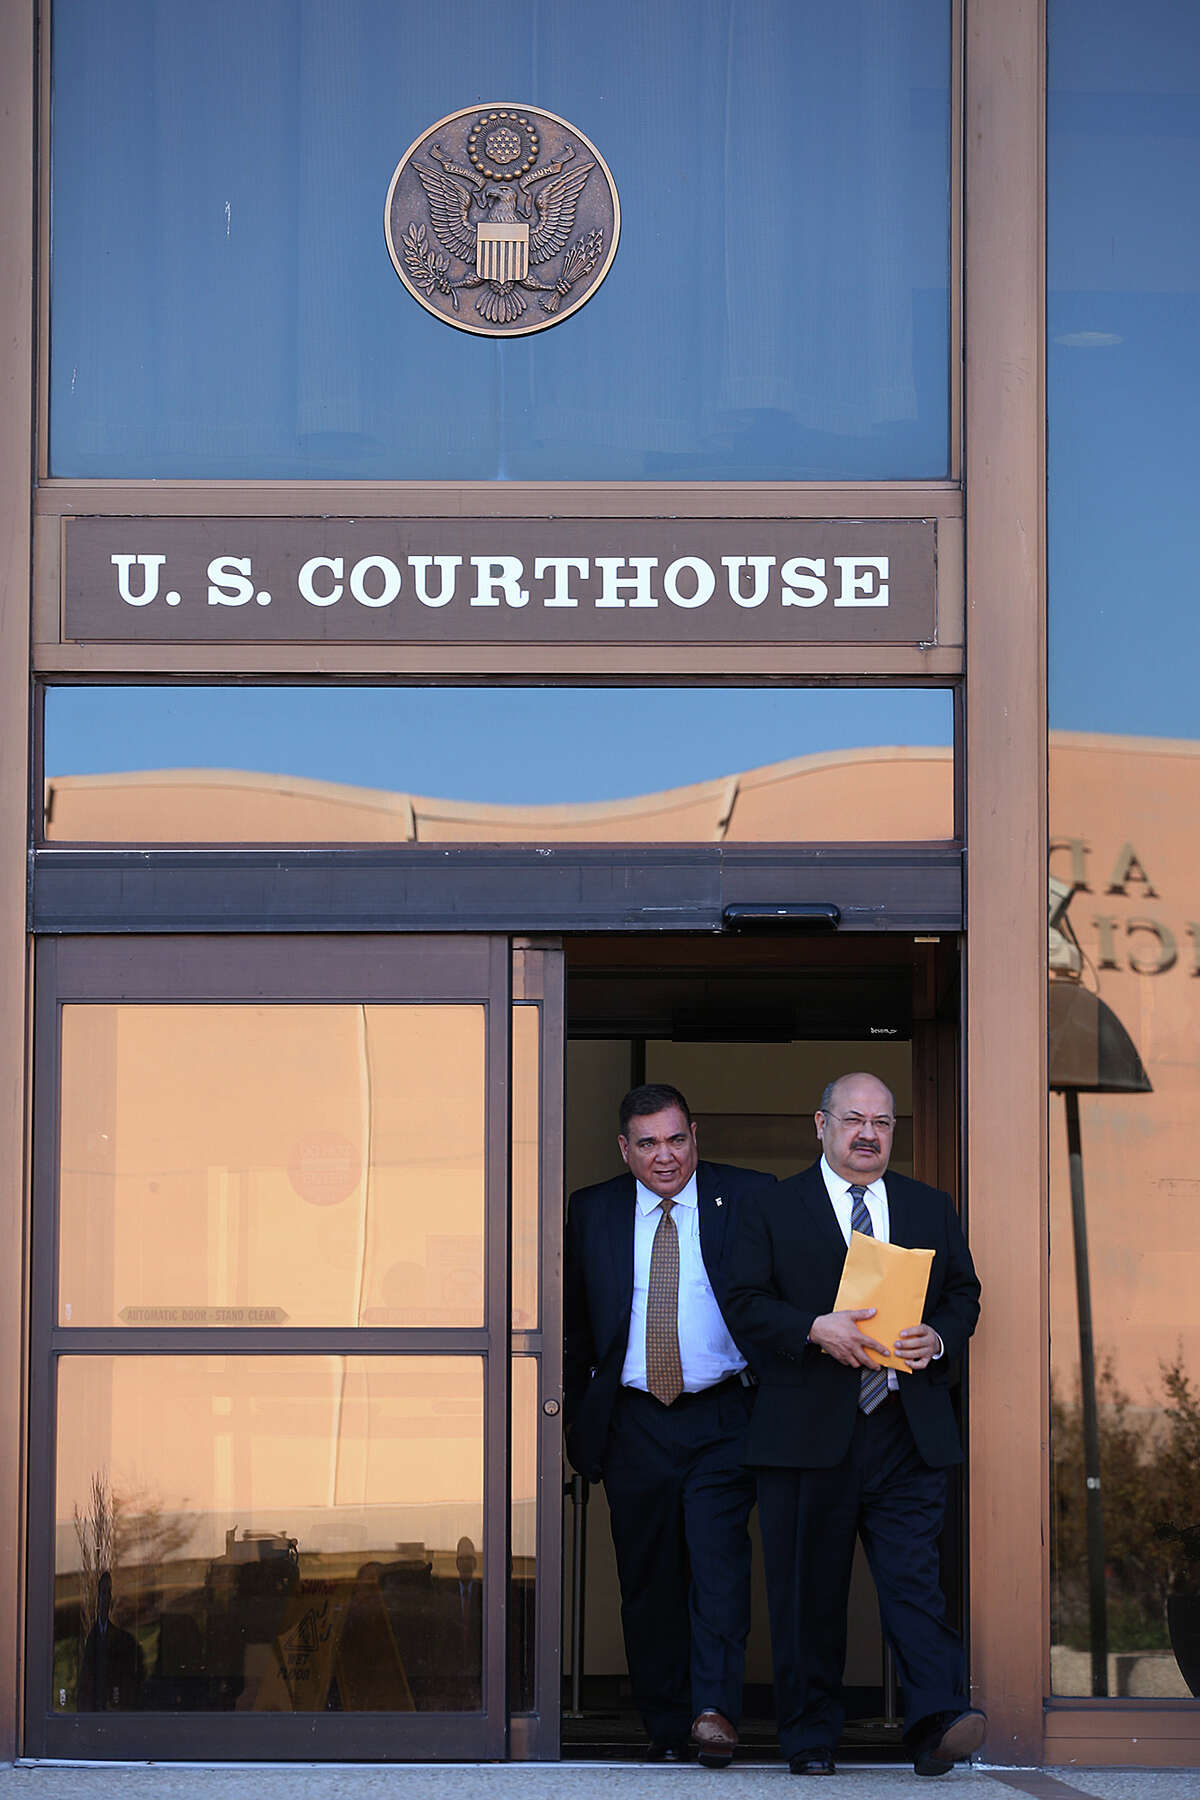 San Antonio attorney Al Acevedo, Jr, right, and his attorney Frank Perez, leave the U.S. Federal Courthouse after Acevedo plead guilty on charges of bribing a state district judge, Monday, March 17, 2014.